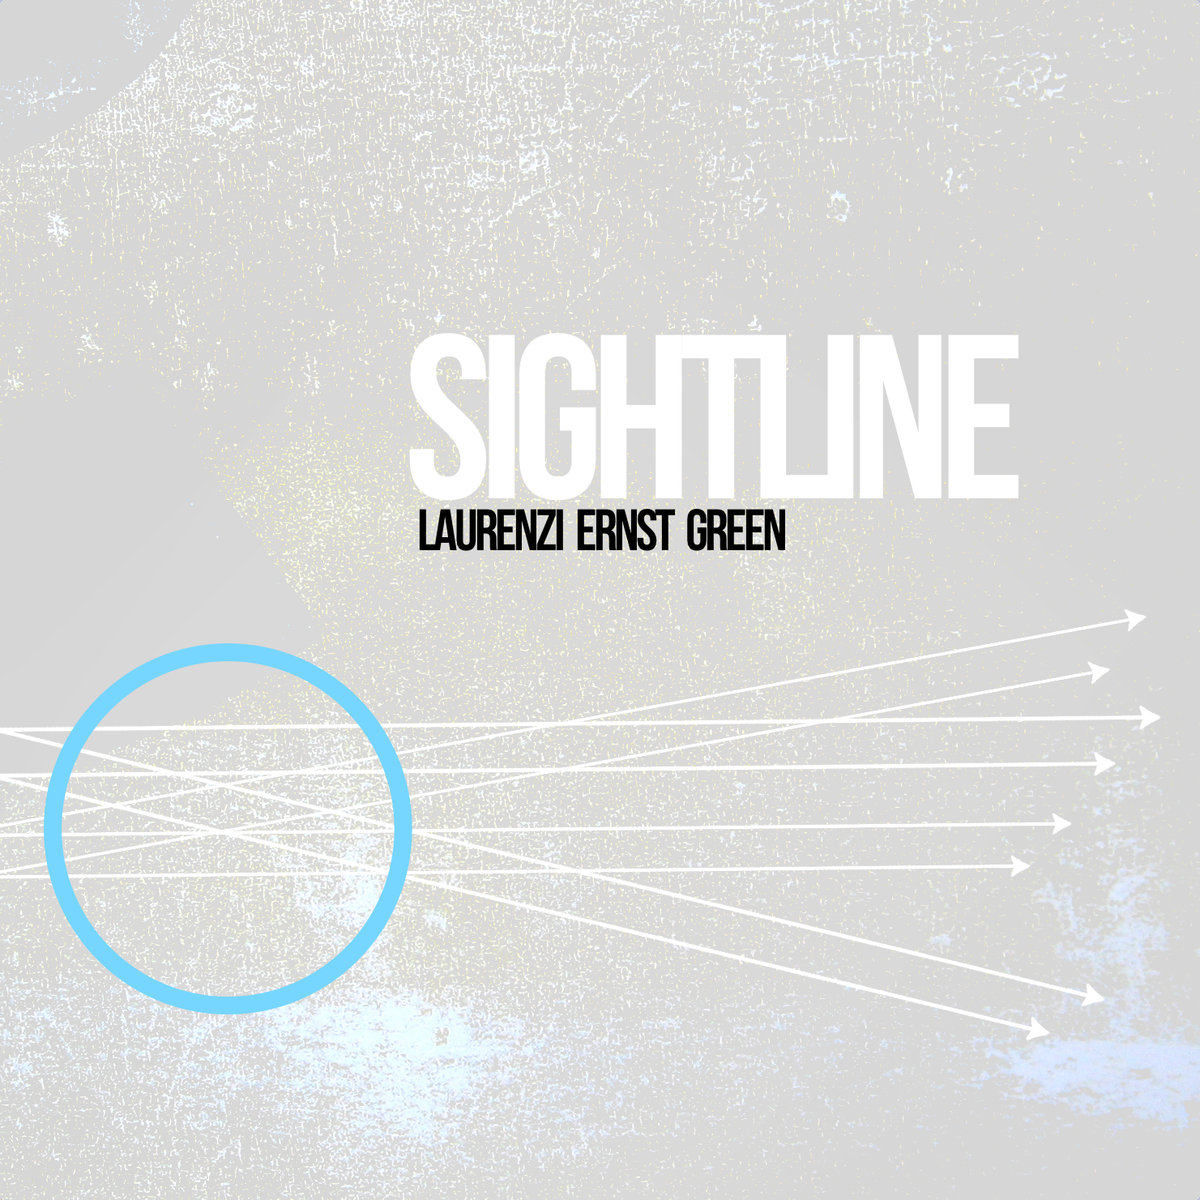 Twin Talk (originally released under Laurenzi/Ernst/Green) - Sightline (2013)